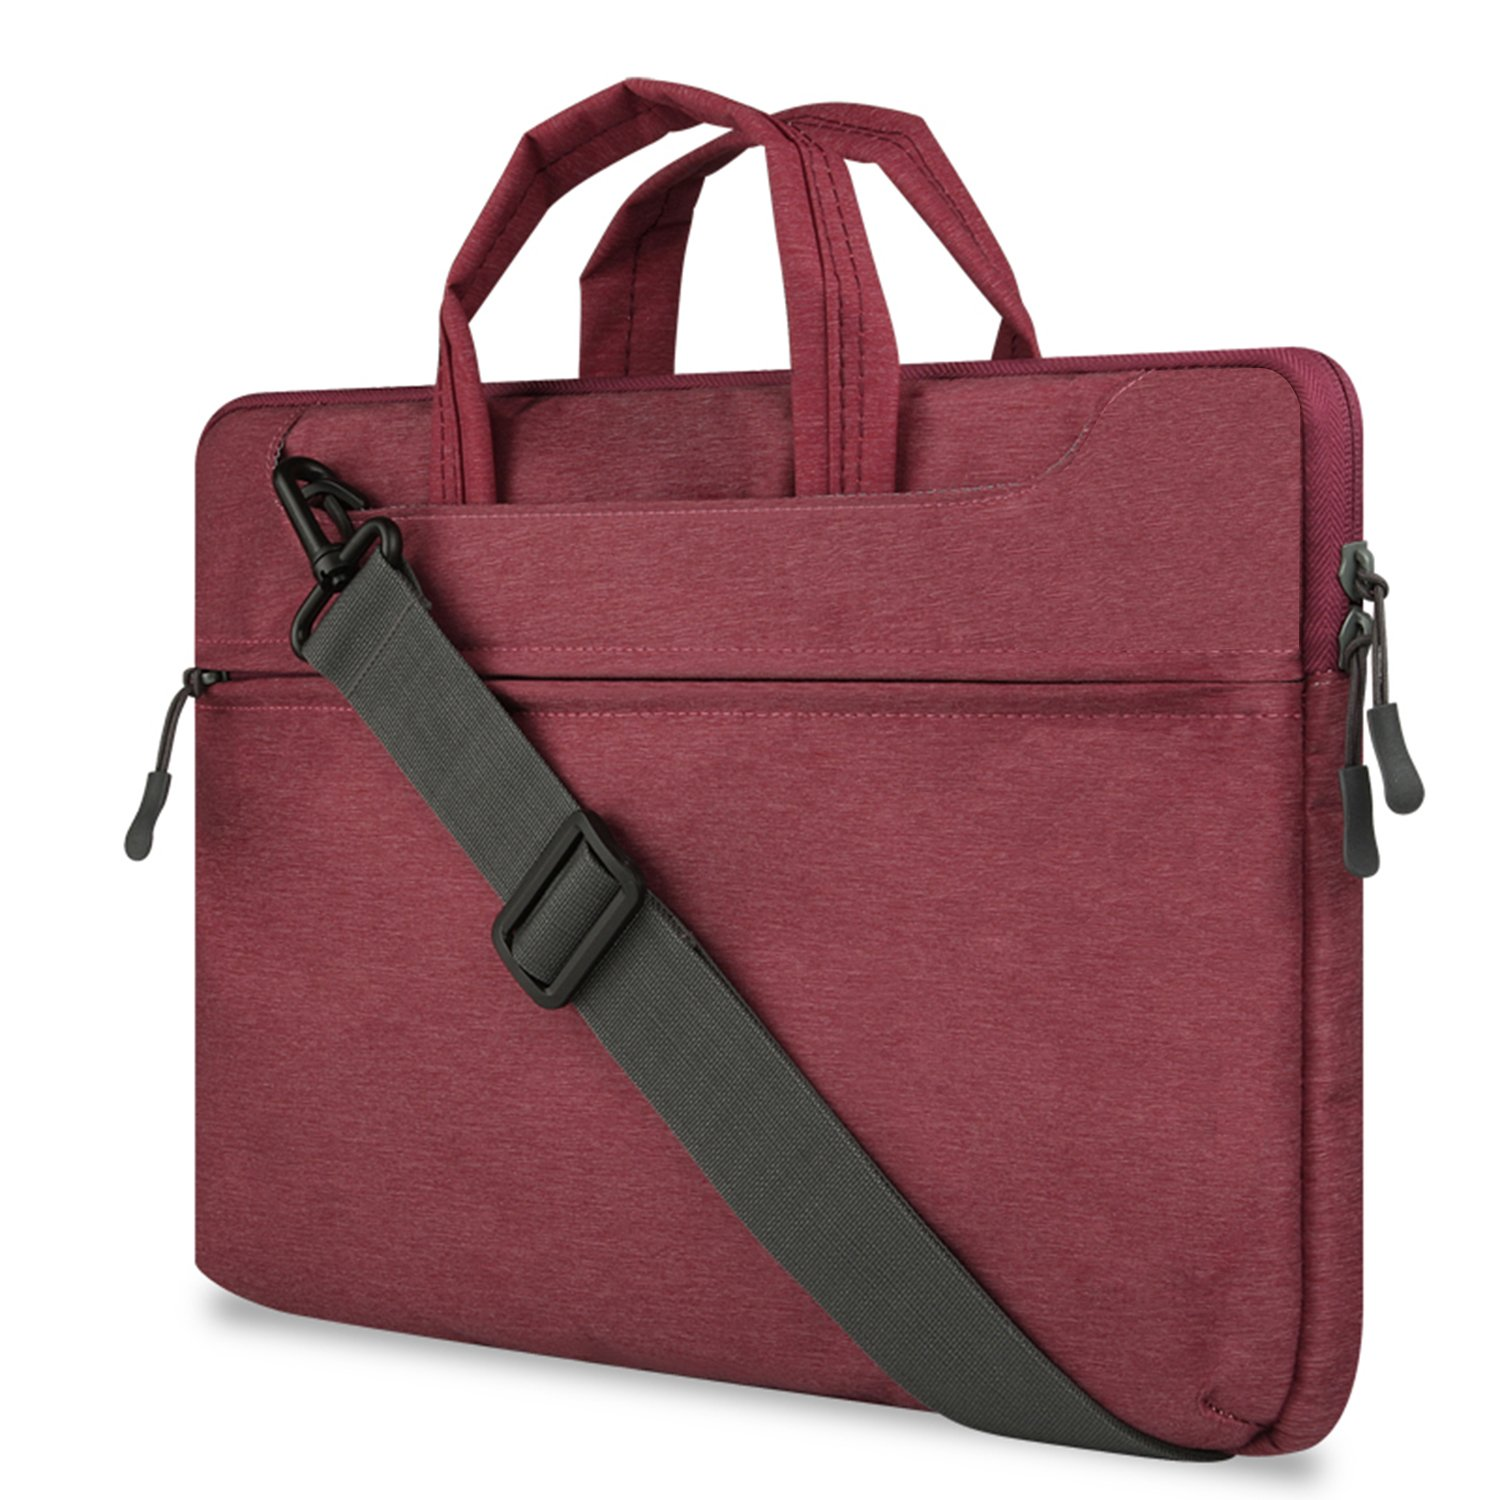 14-15.6 inch Laptop Sleeve Case Protective Bag for 15'' MacBook Pro 2016, Ultrabook Notebook Carrying Case Handbag for 14'' 15'' Lenovo Dell HP Toshiba Chromebook Computers Burgundy